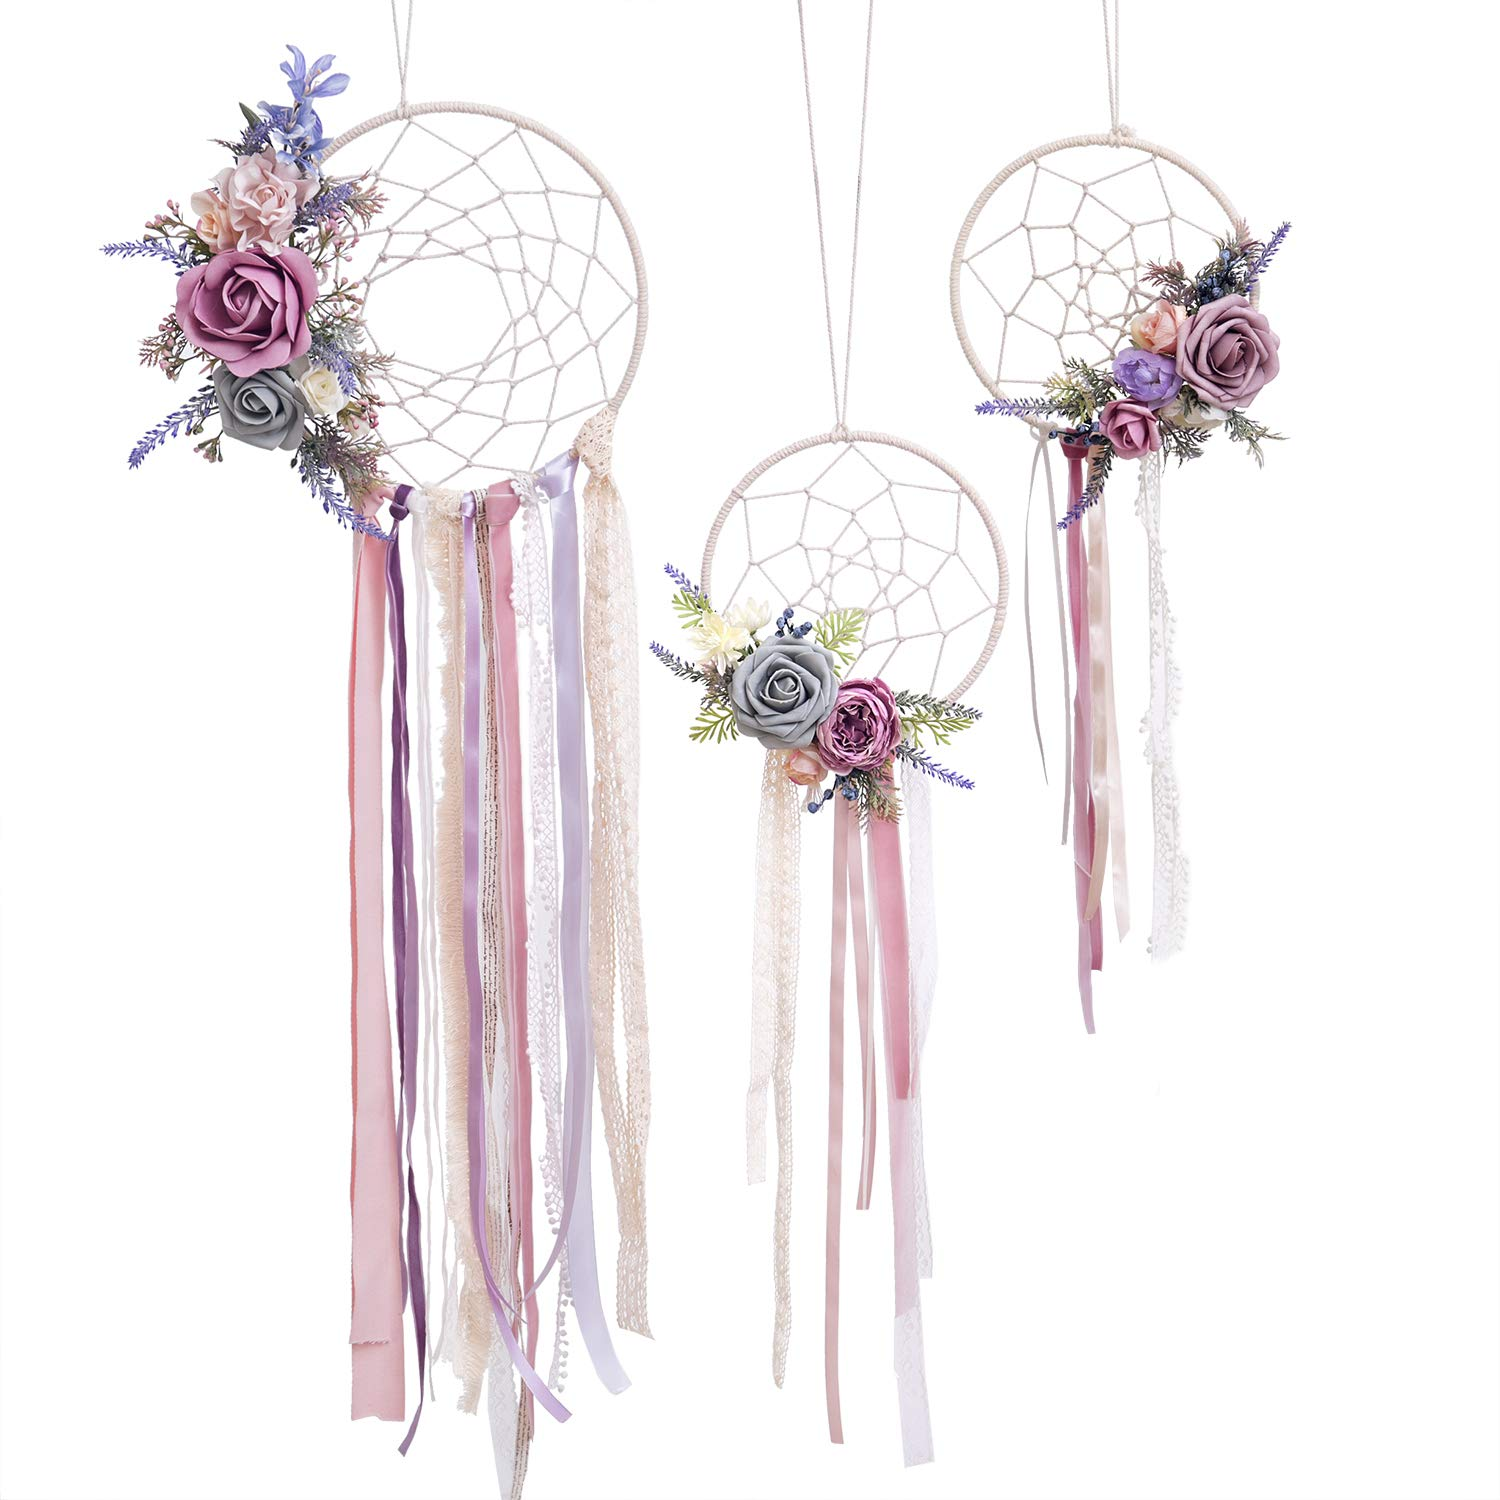 Ling's moment Set of 3 Boho Dreamcatcher Floral Triangle Dreamcatcher Handmade Lavender Boho Wall Hanging with Tassel for Home Wedding Baby Shower Girl Nursery Wall Art